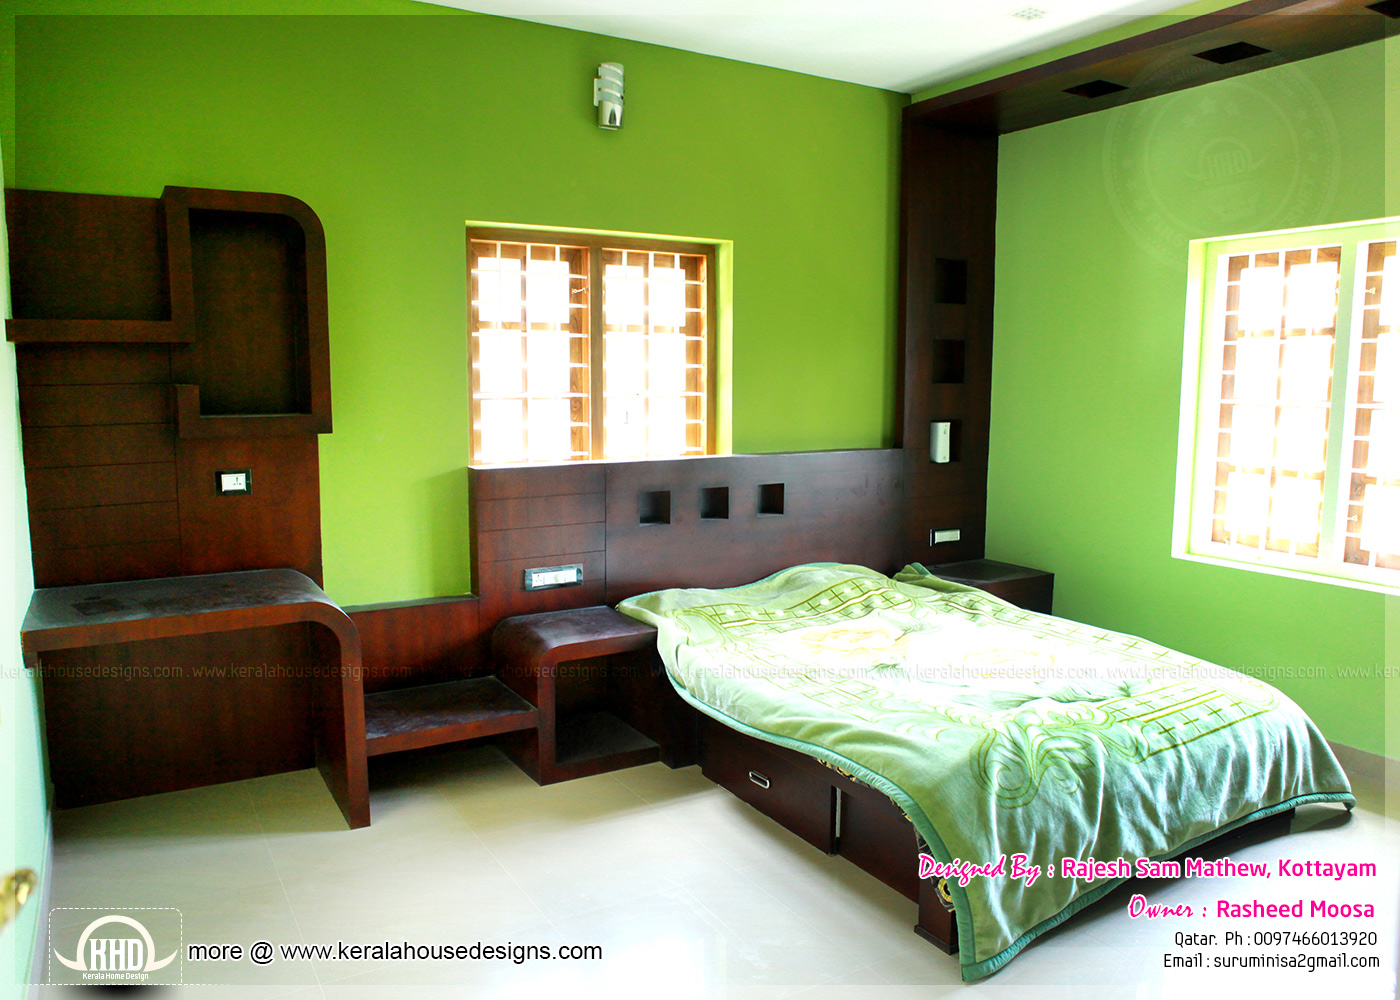 Kerala interior design with photos kerala home design - Interior design for bedroom in india ...